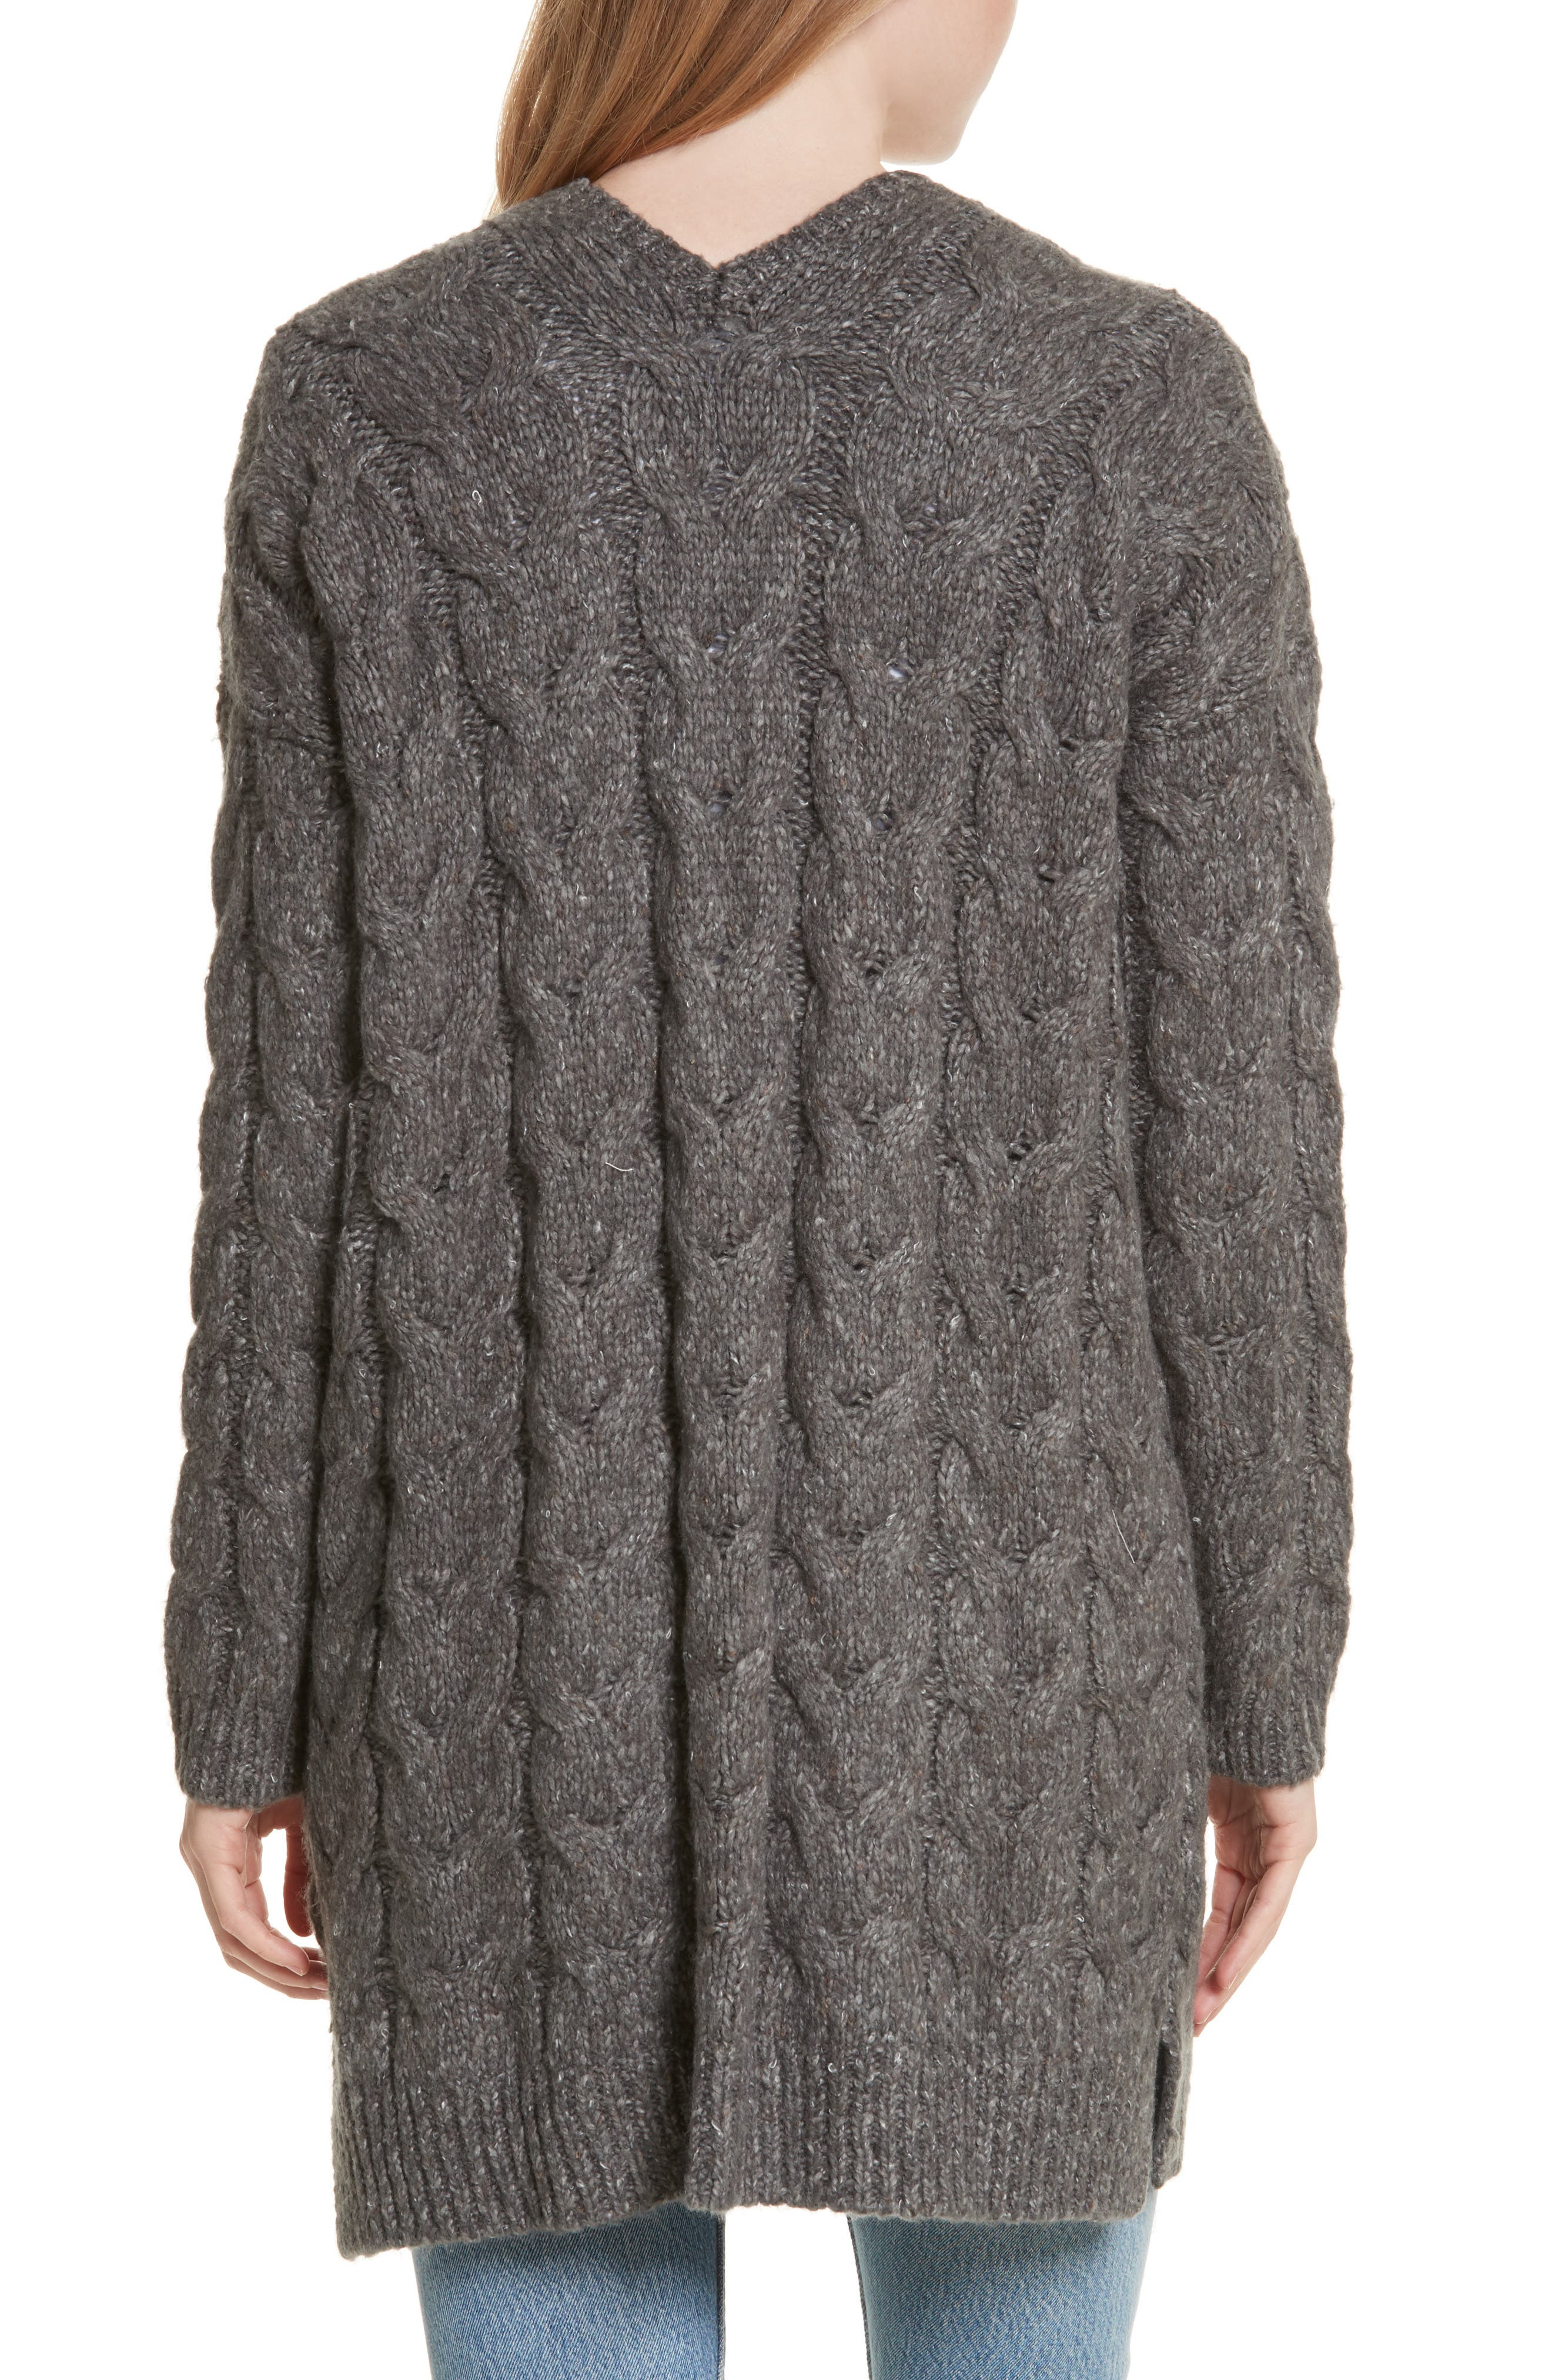 Tienna Cable-Knit Cardigan,                             Alternate thumbnail 2, color,                             076